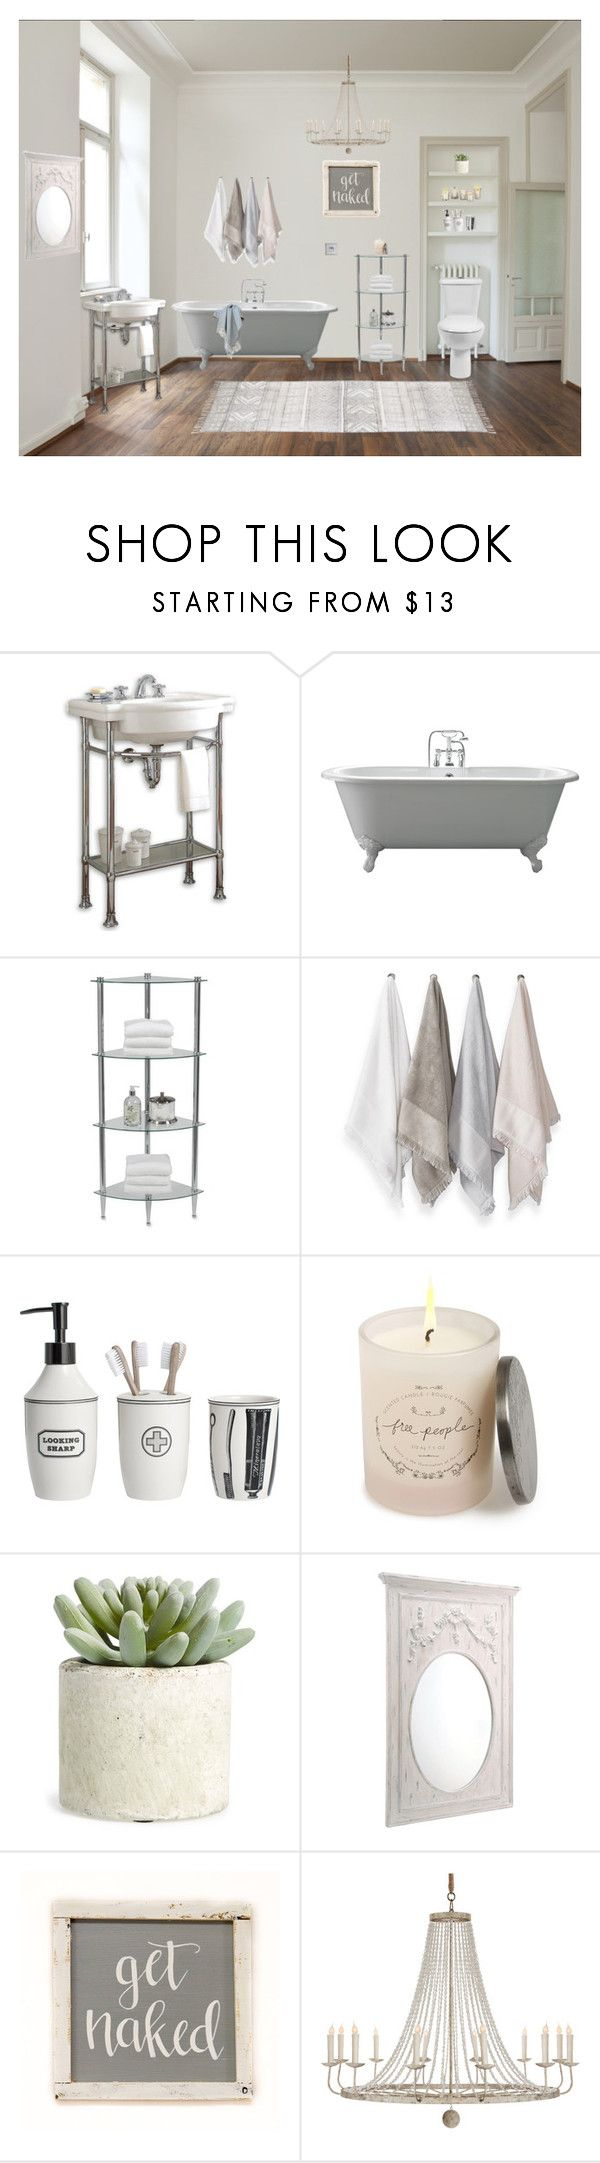 """""""Loft Bathroom"""" by libbylu116-1 ❤ liked on Polyvore featuring interior, interiors, interior design, home, home decor, interior decorating, RetroSpect, Creative Bath Products, Sparrow & Wren and Dot & Bo"""